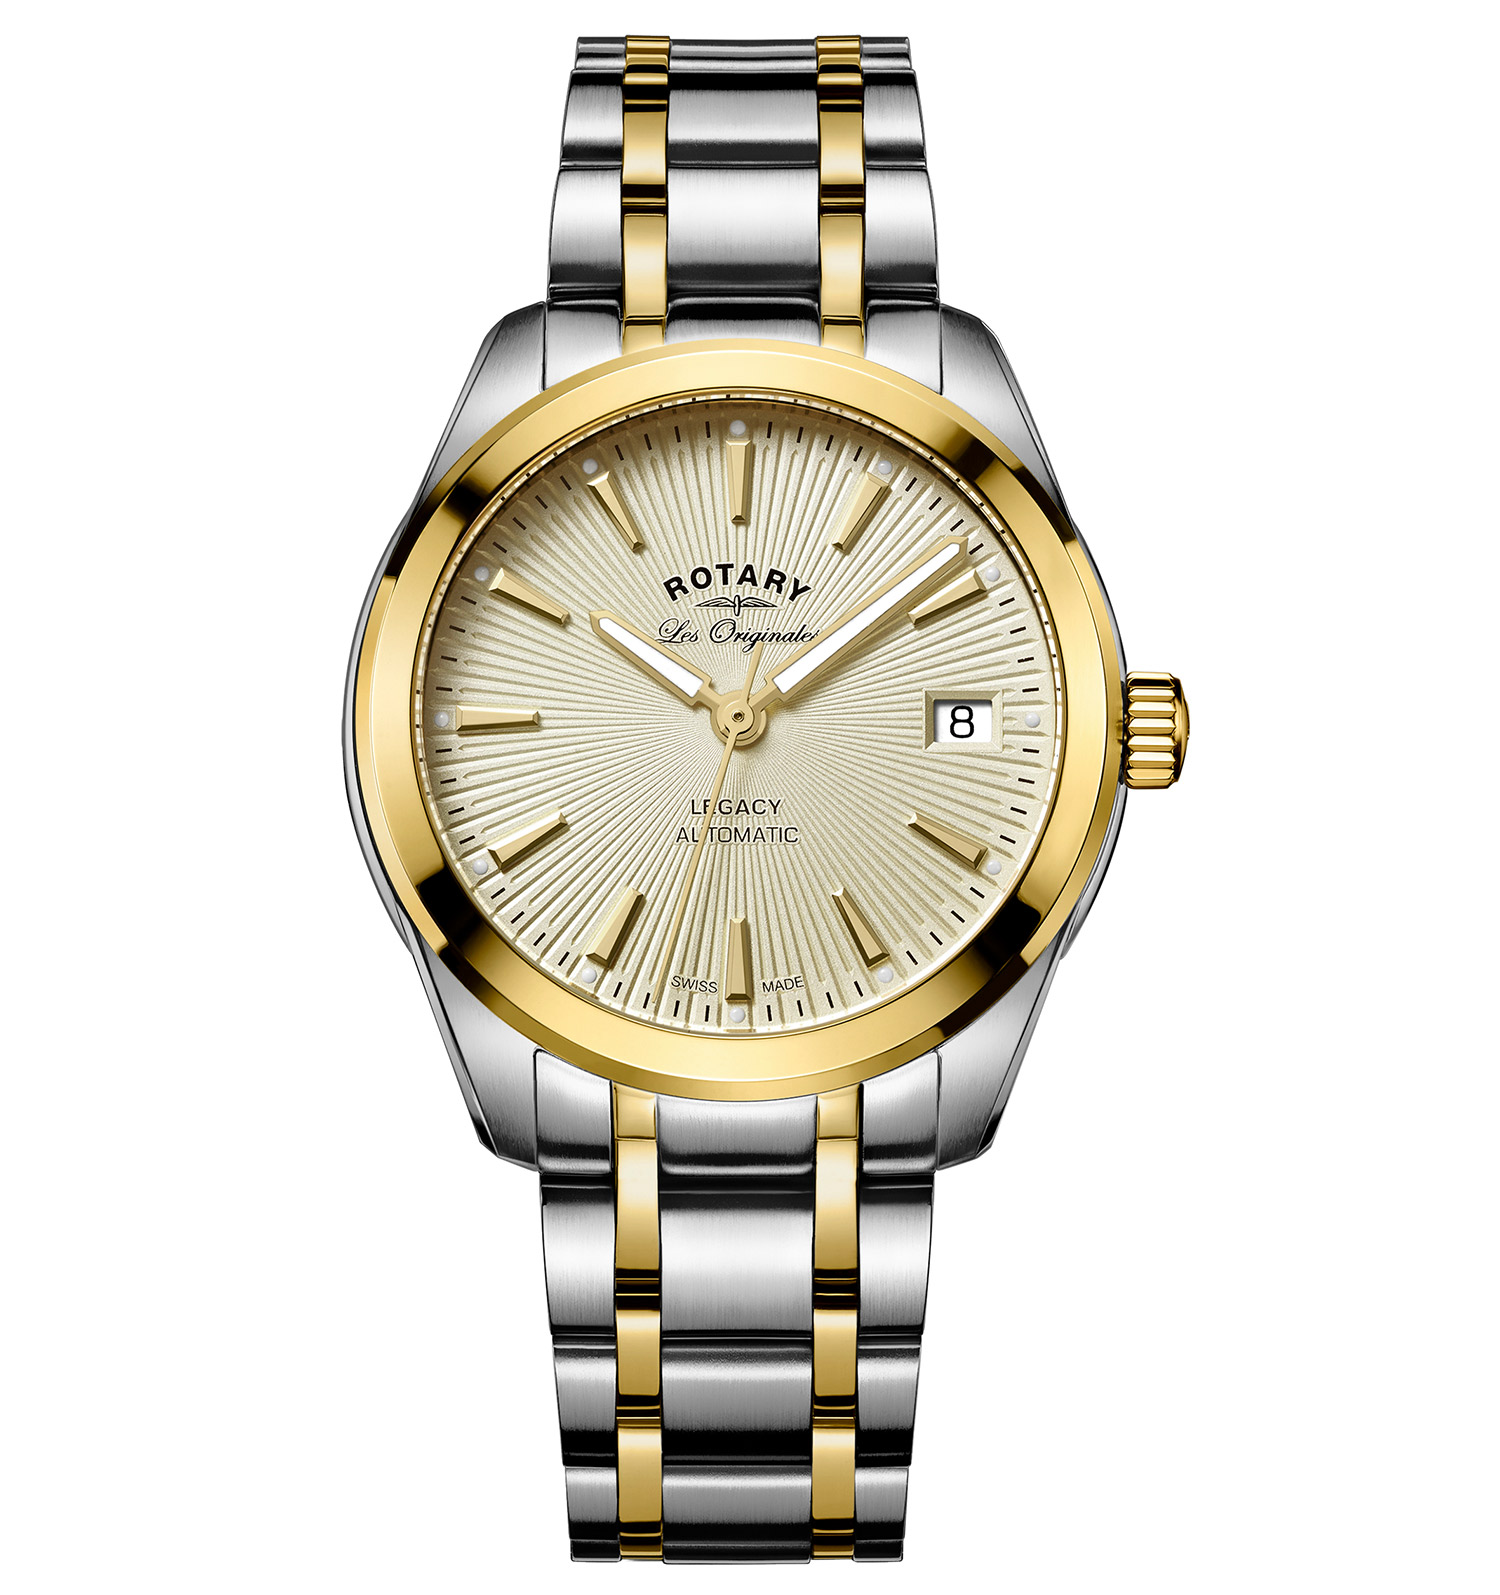 ROTARY LES ORIGINALES LEGACY AUTOMATIC SWISS LADIES TWO TONE WATCH